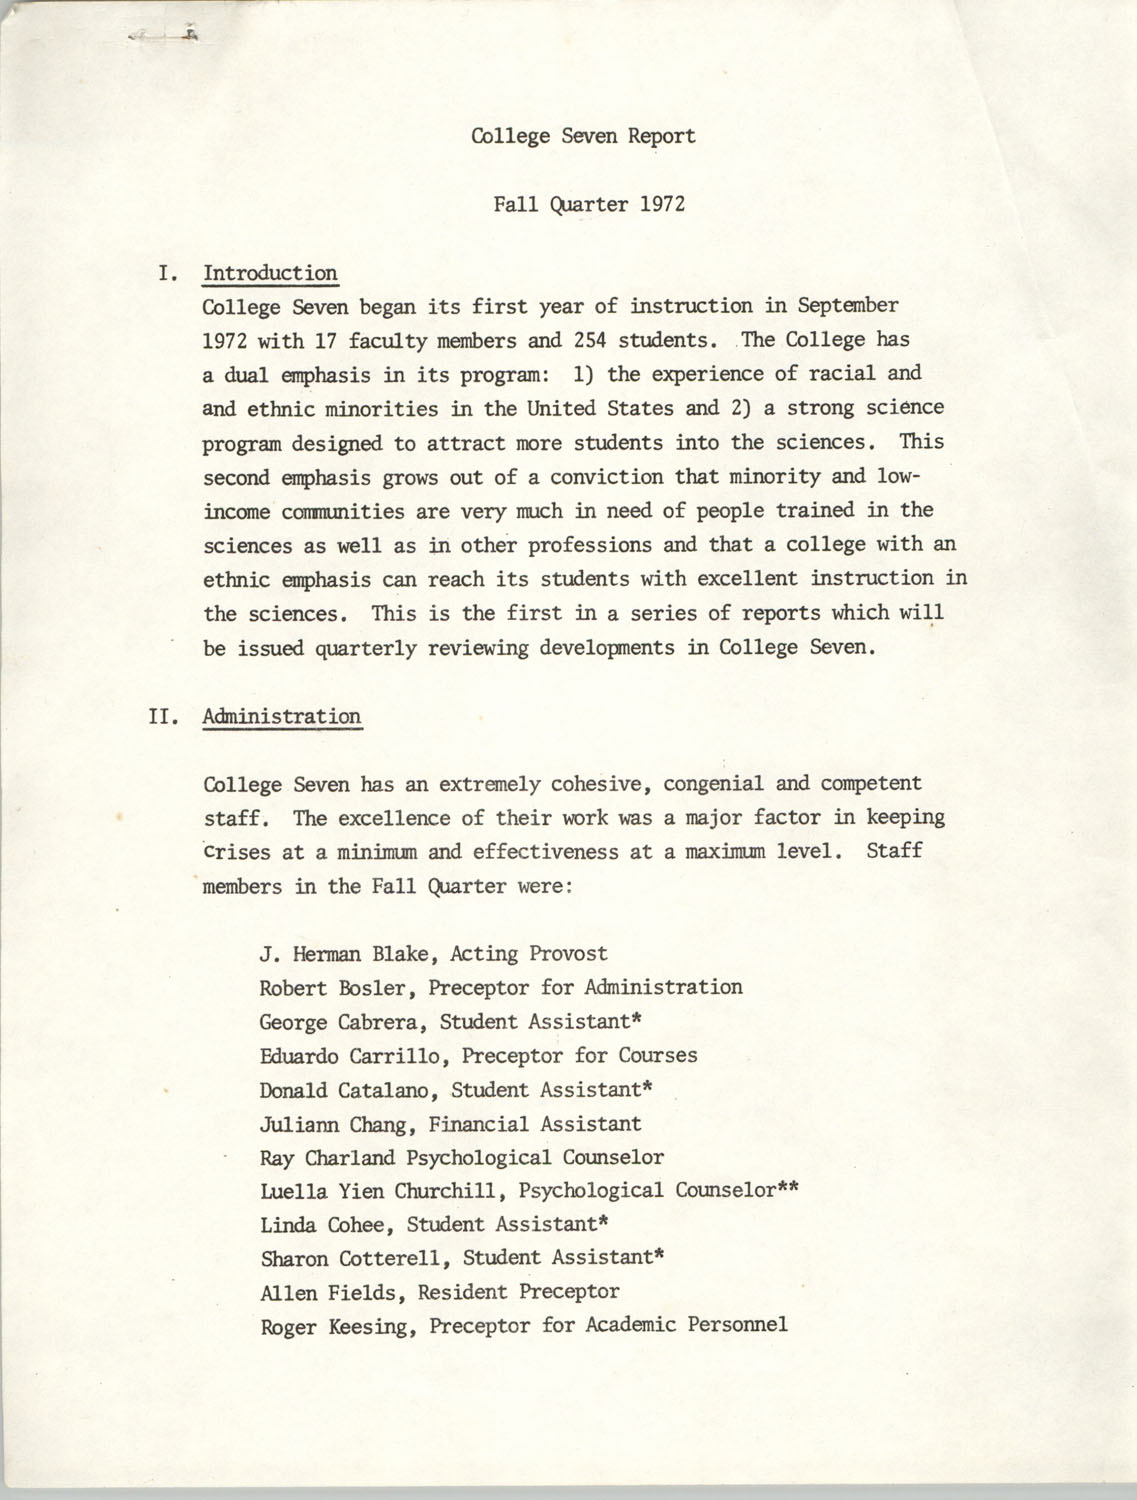 College Seven Report, Fall Quarter 1972